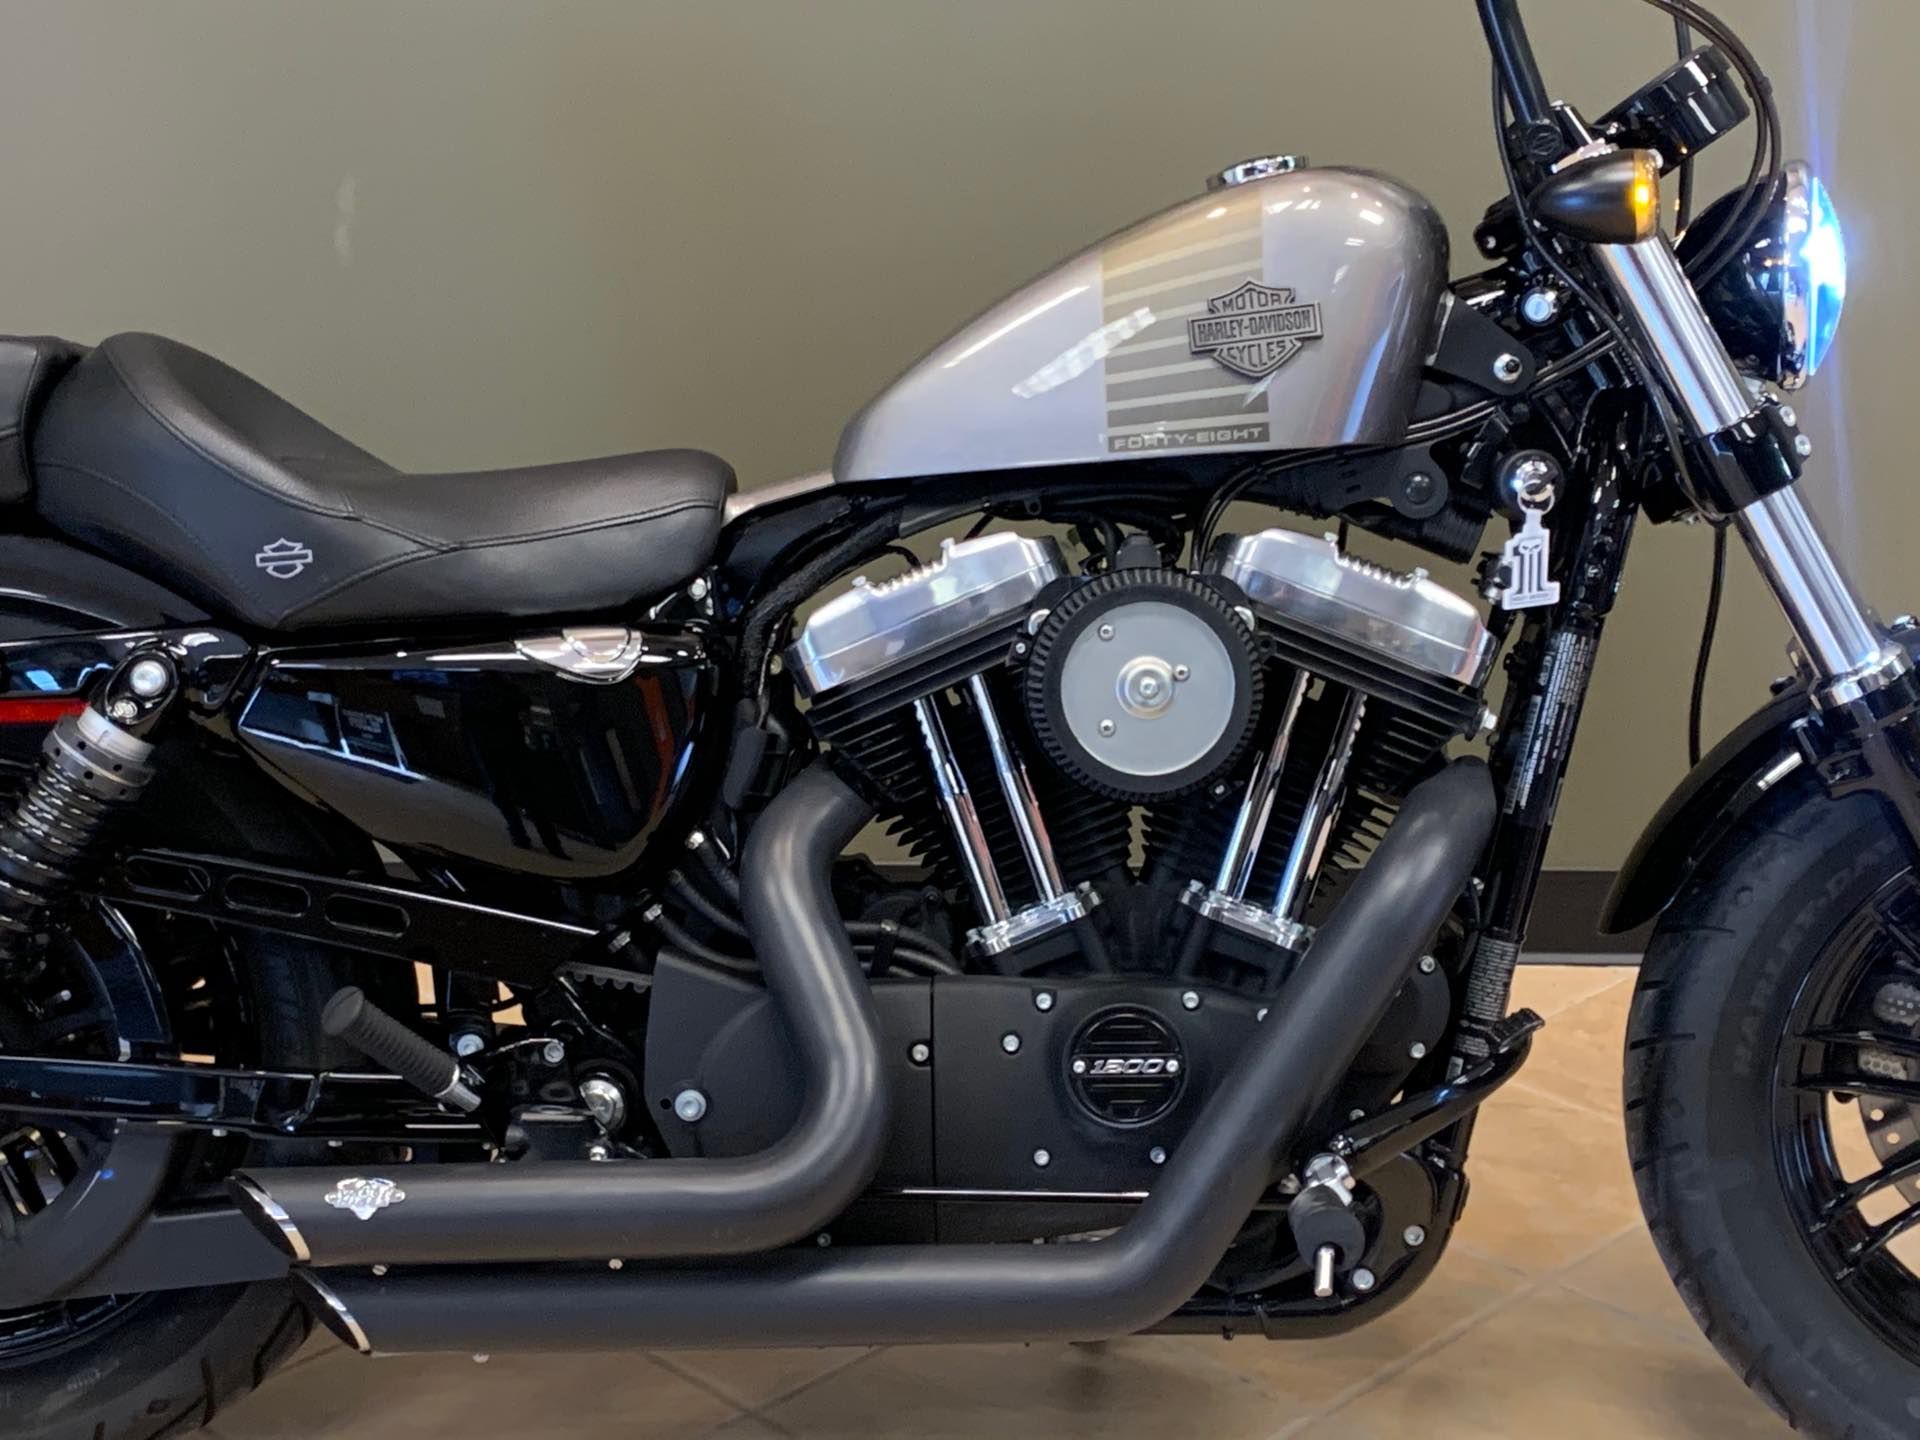 2016 Harley-Davidson Sportster Forty-Eight at Loess Hills Harley-Davidson